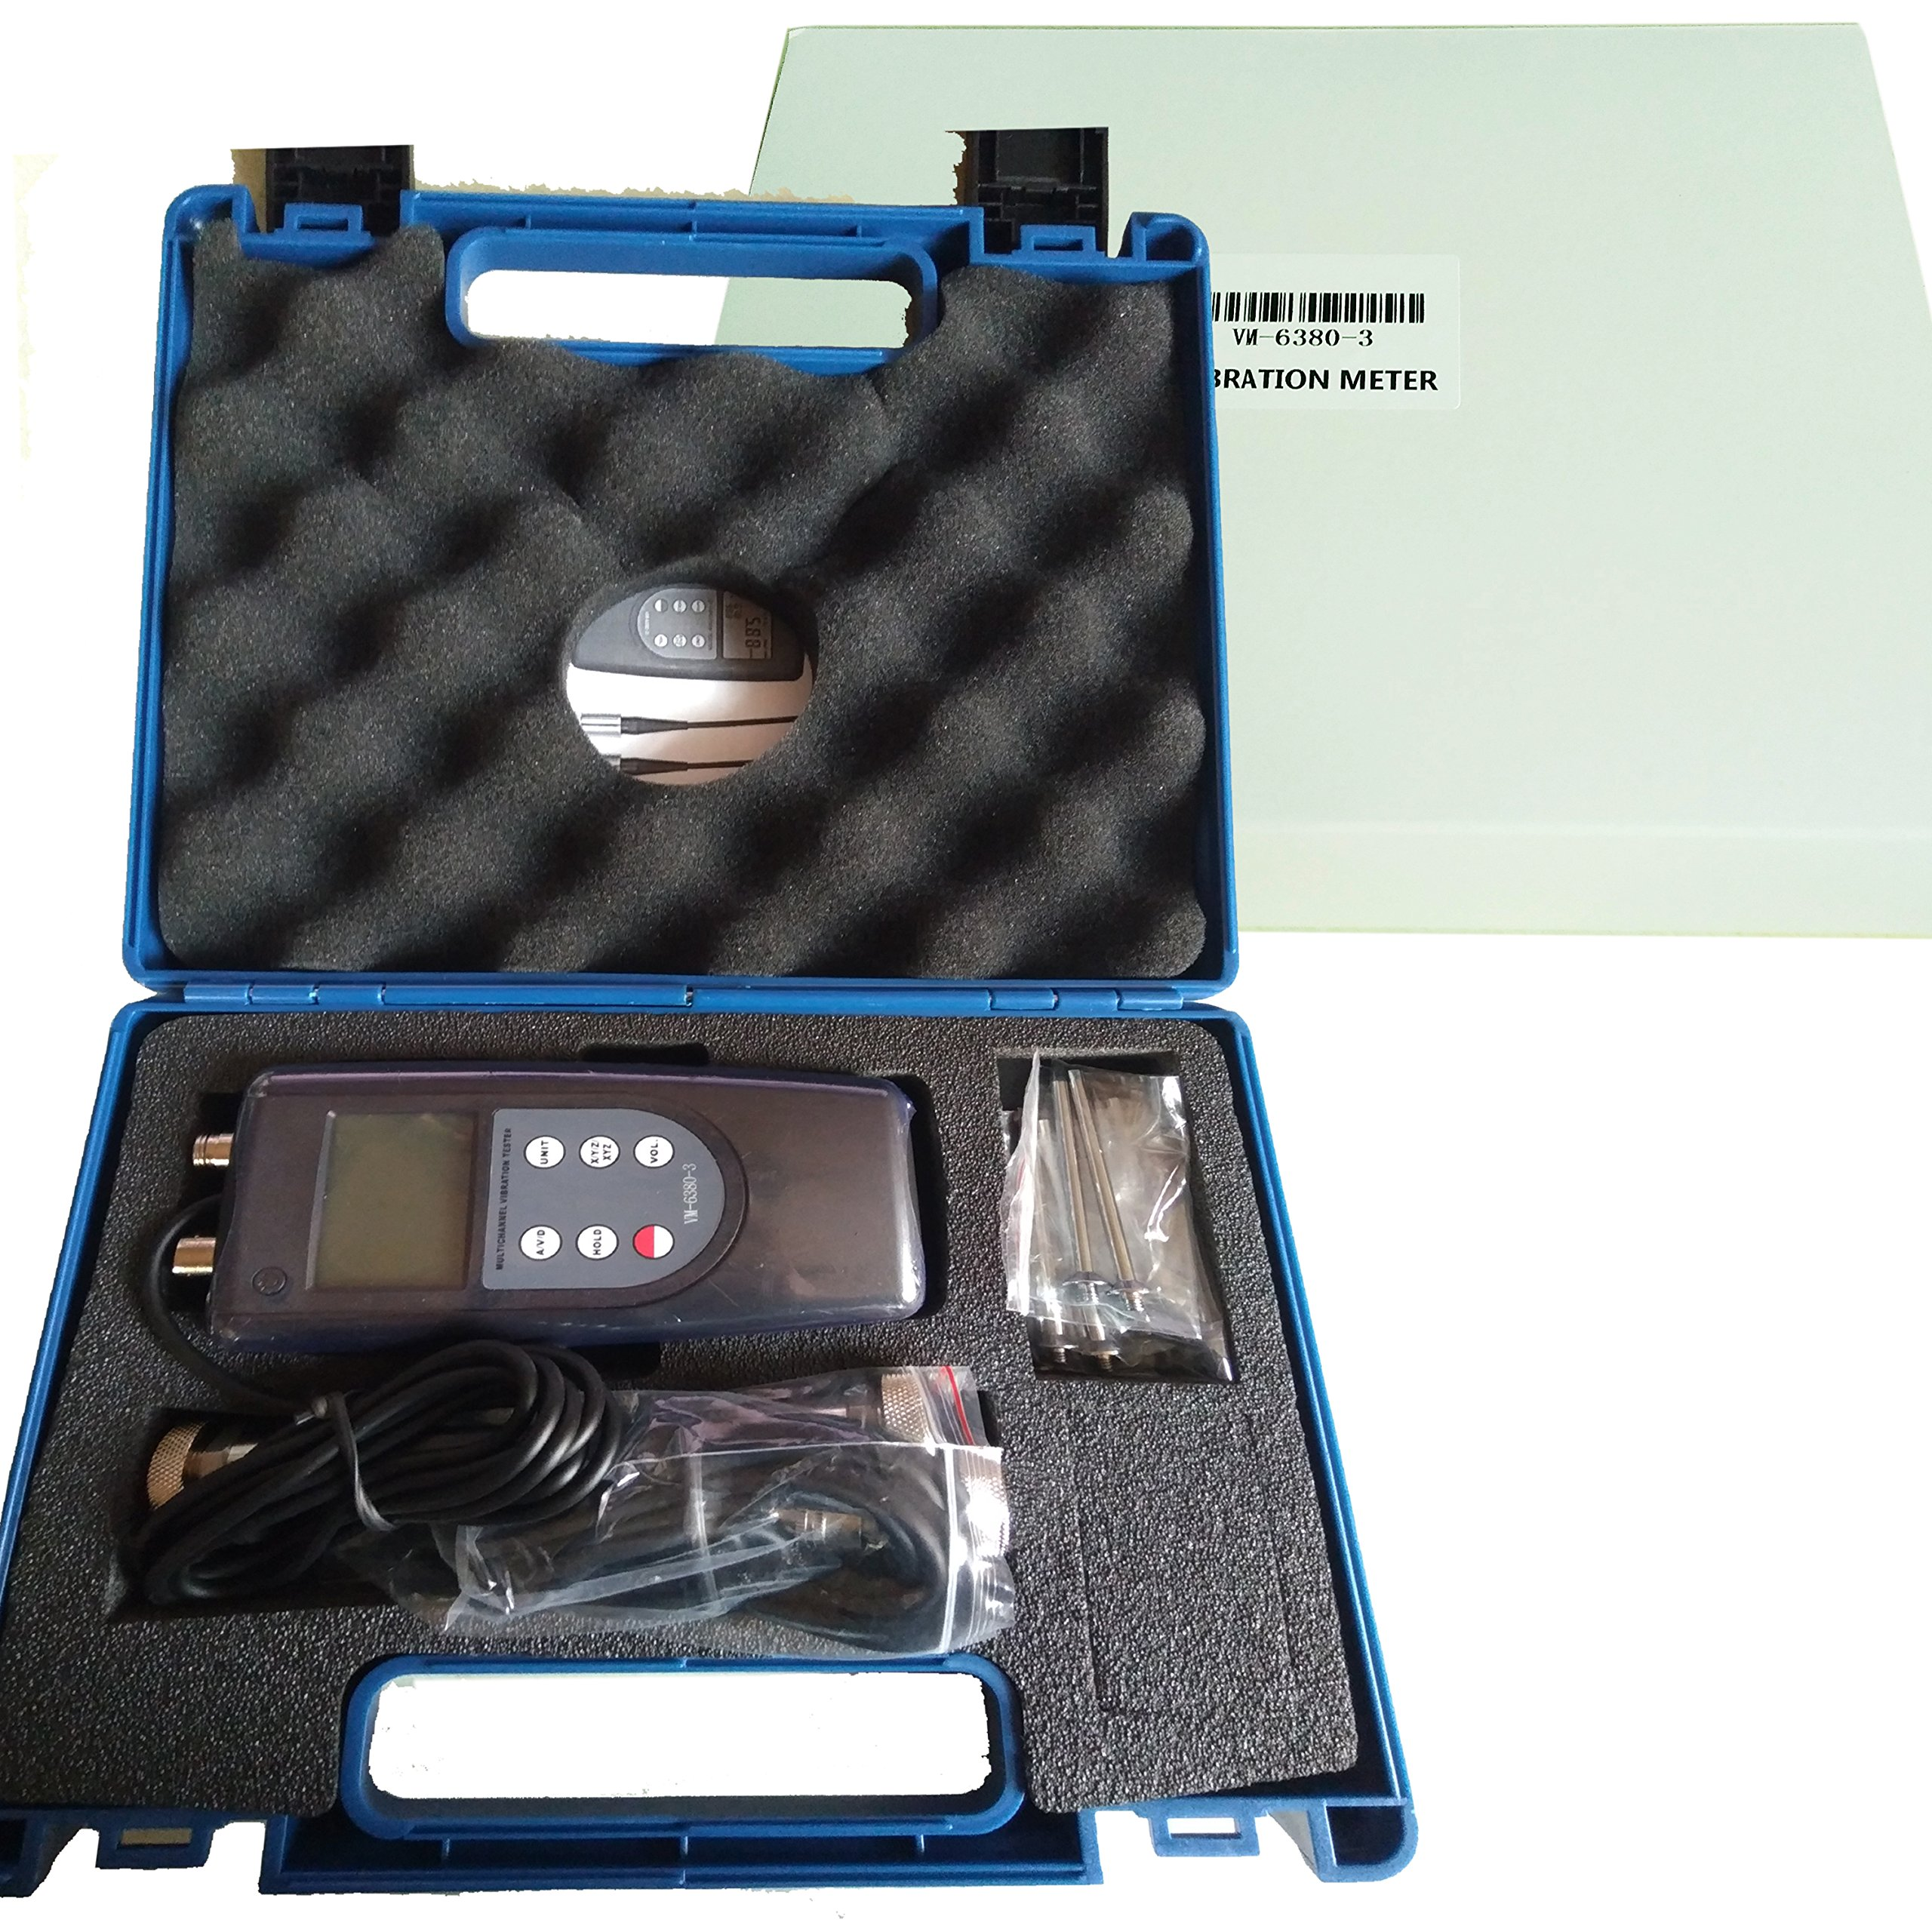 VM-6380-3 Digital Vibration Meter/Data Logger Three Channel Vibration Meter 3 Channel Piezoelectric Tranducer Vibration Meter Tester with Vibrometer Gauge Vibrating Gauge, Black